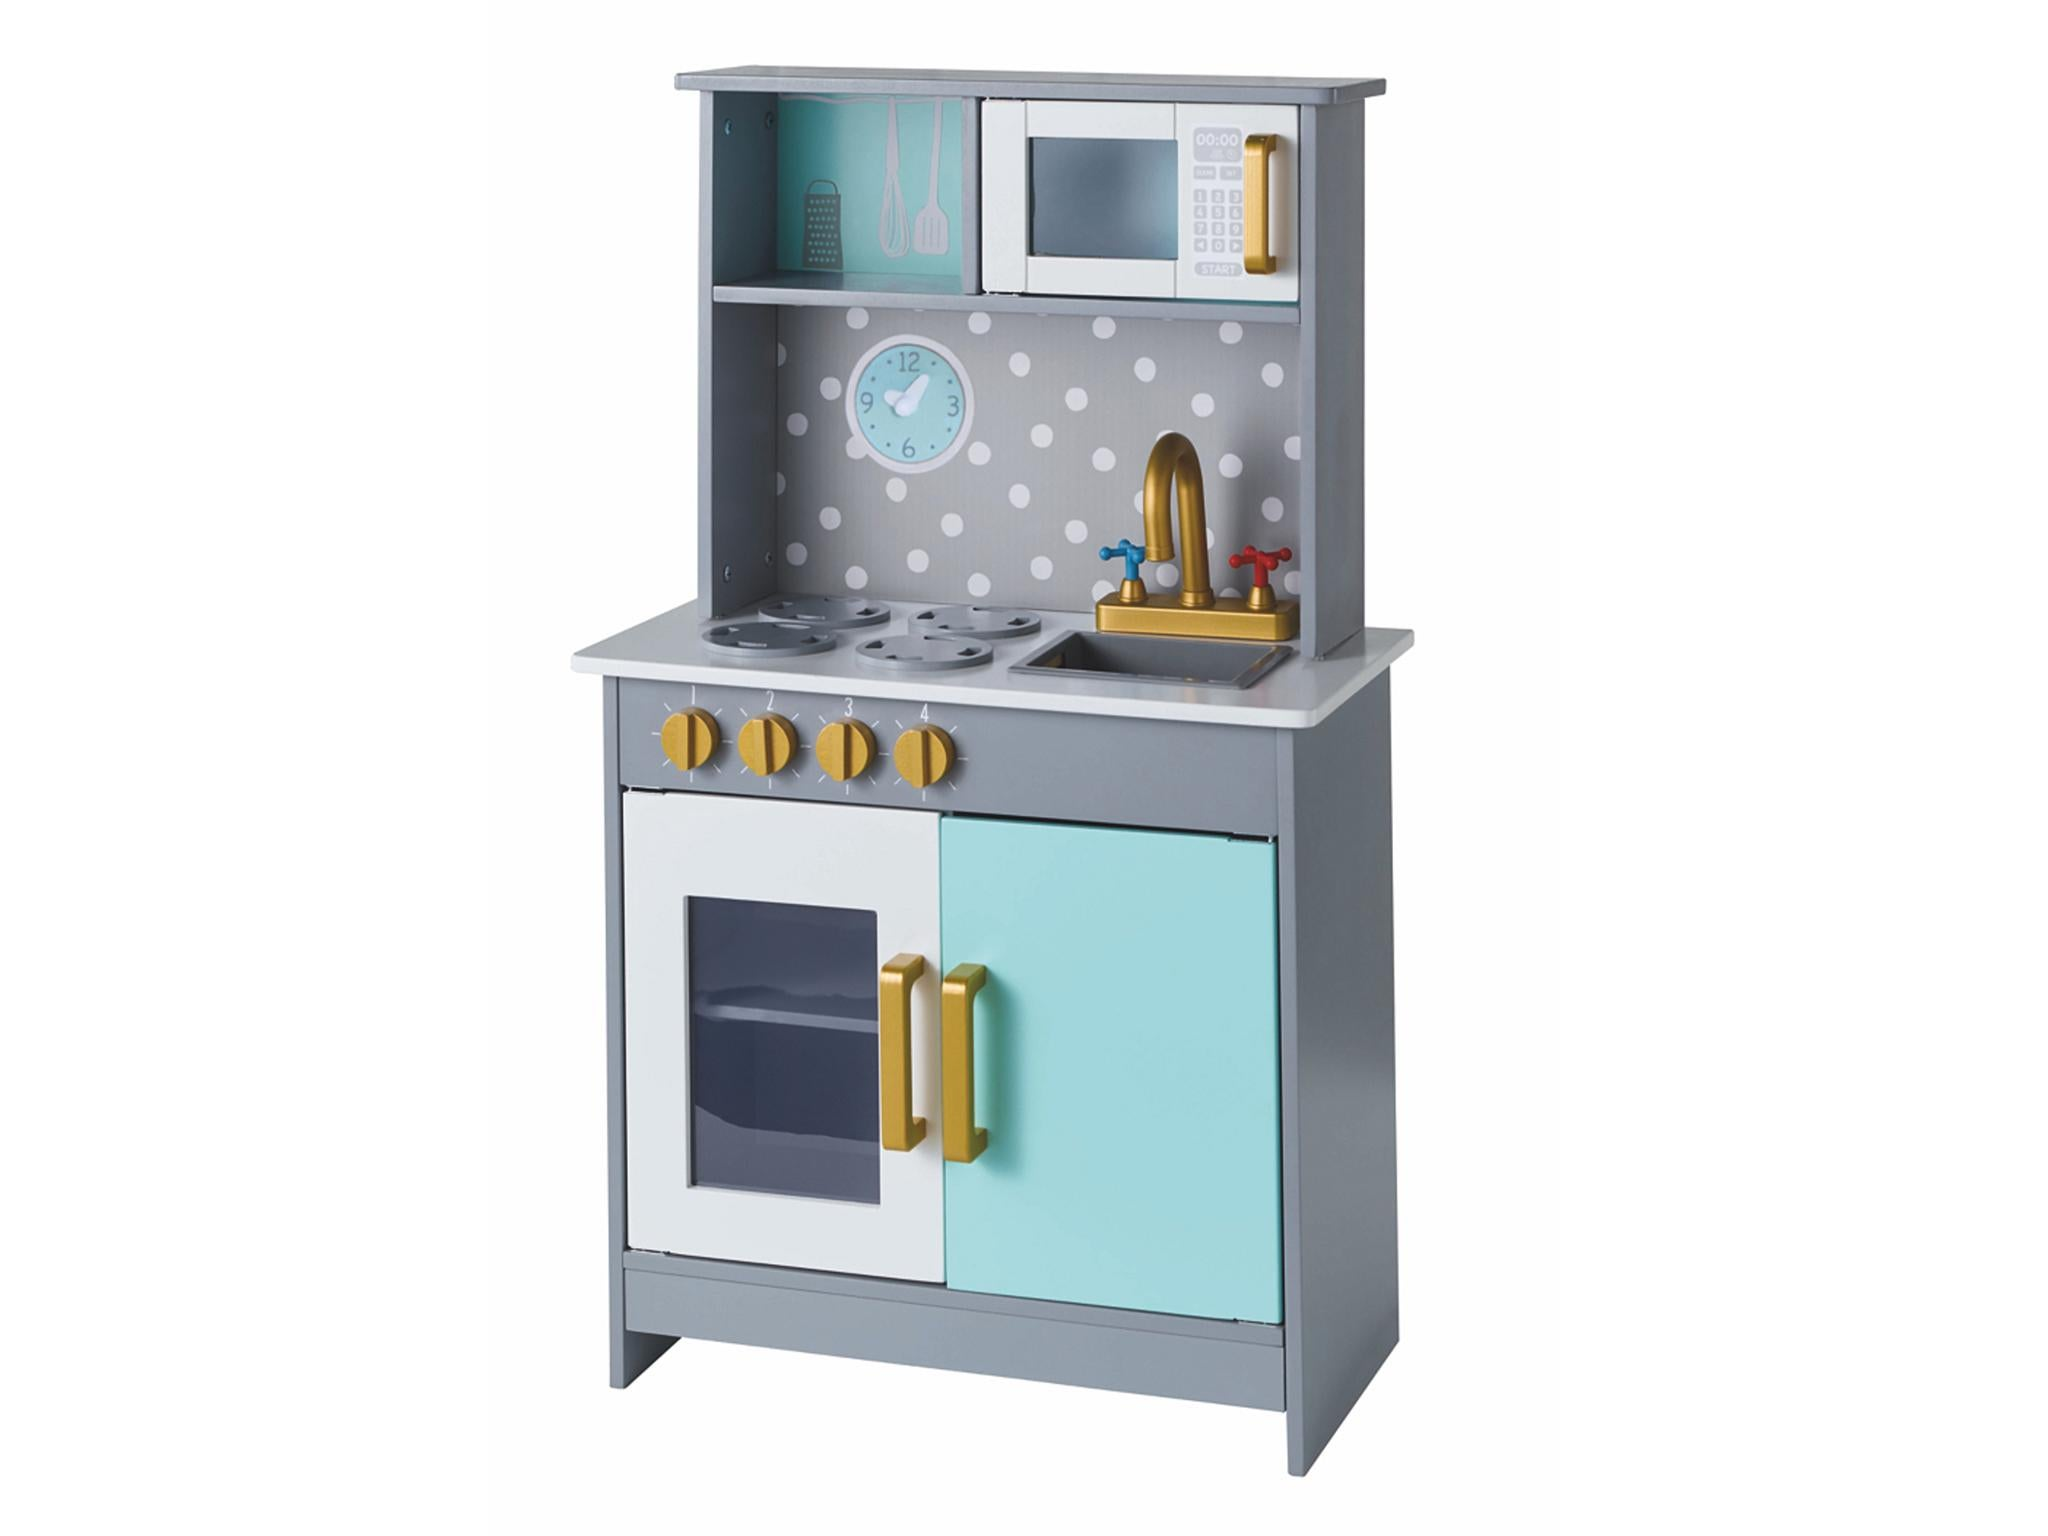 10 best play kitchens | The Independent